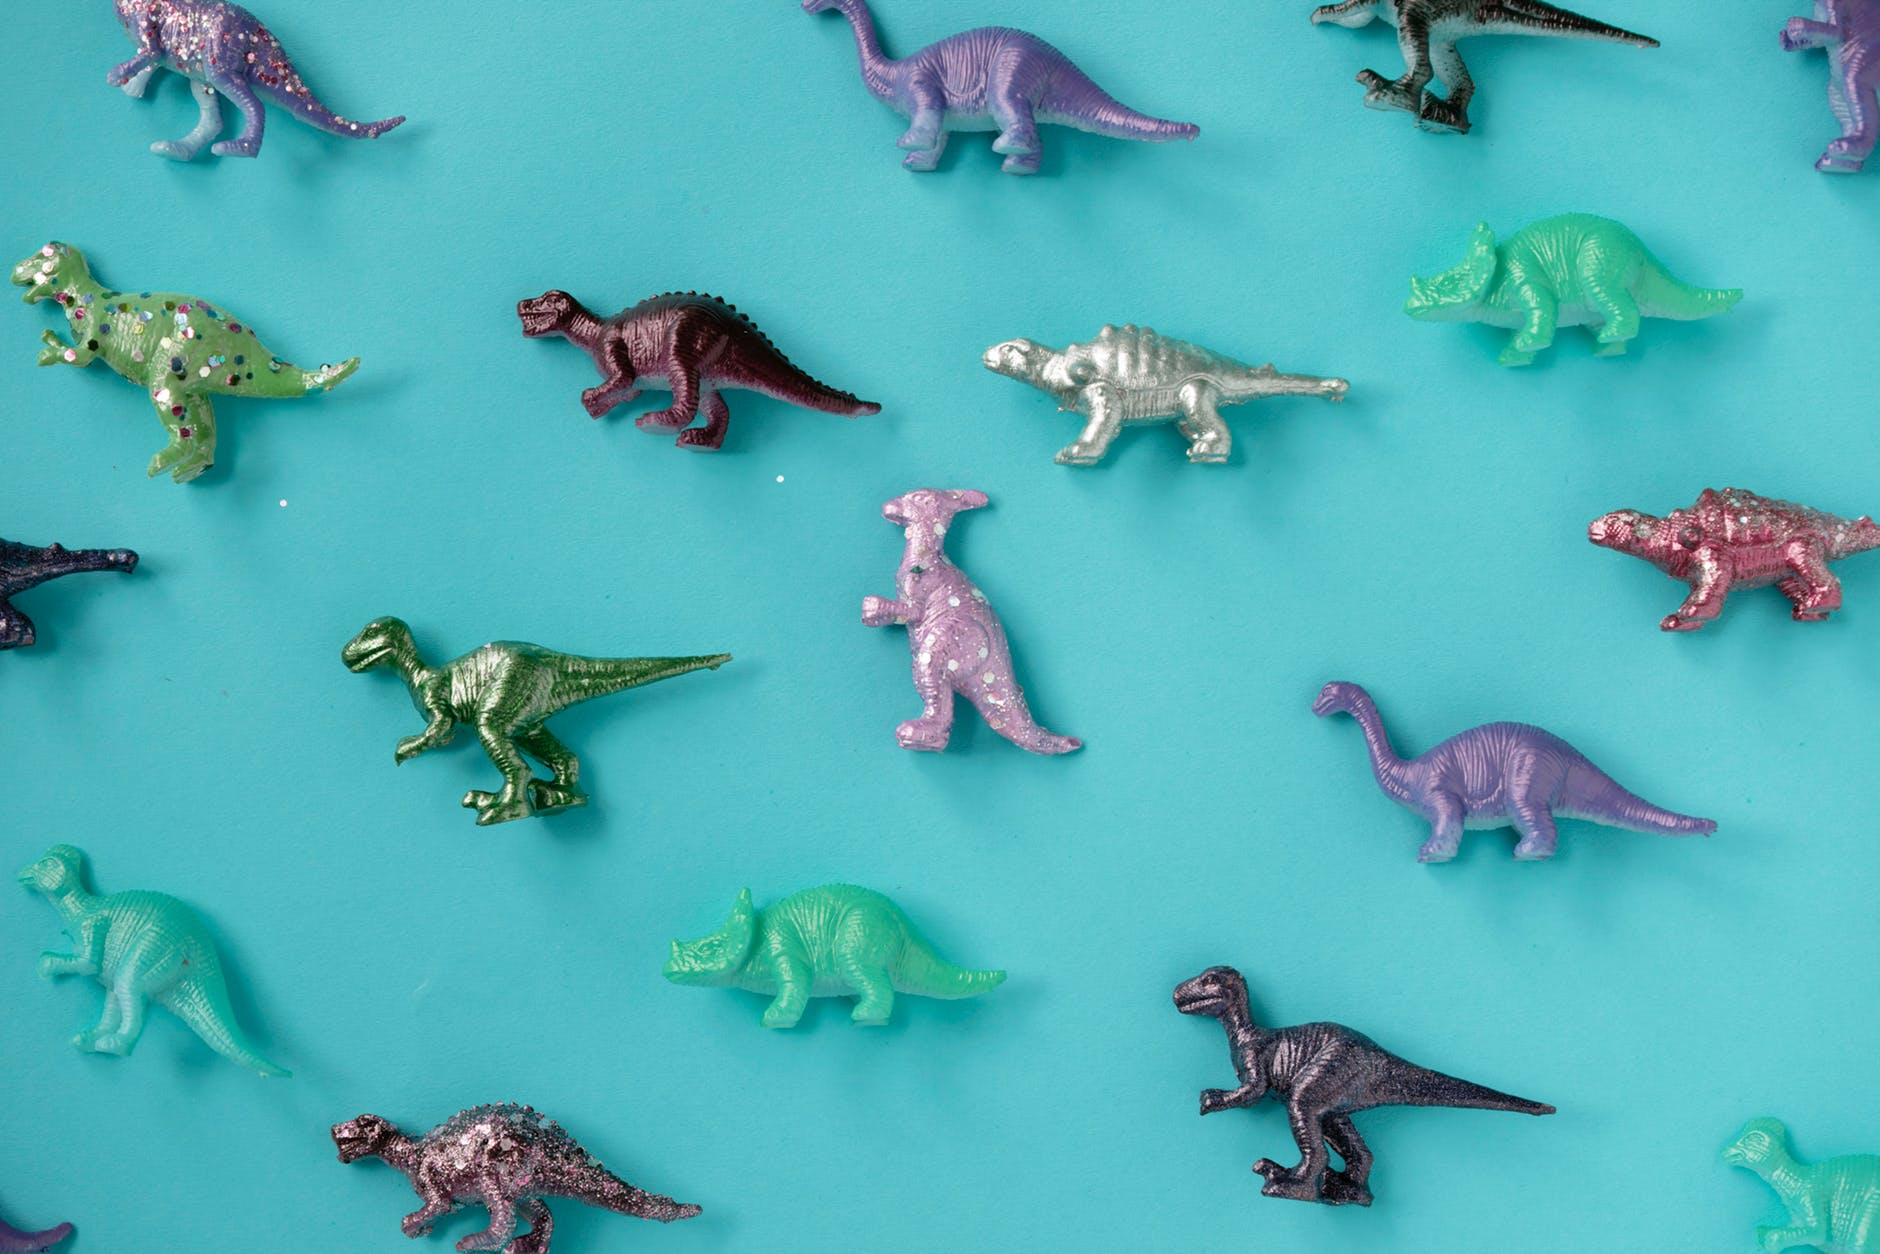 assorted color plastic dinosaur figurine lot on teal surface